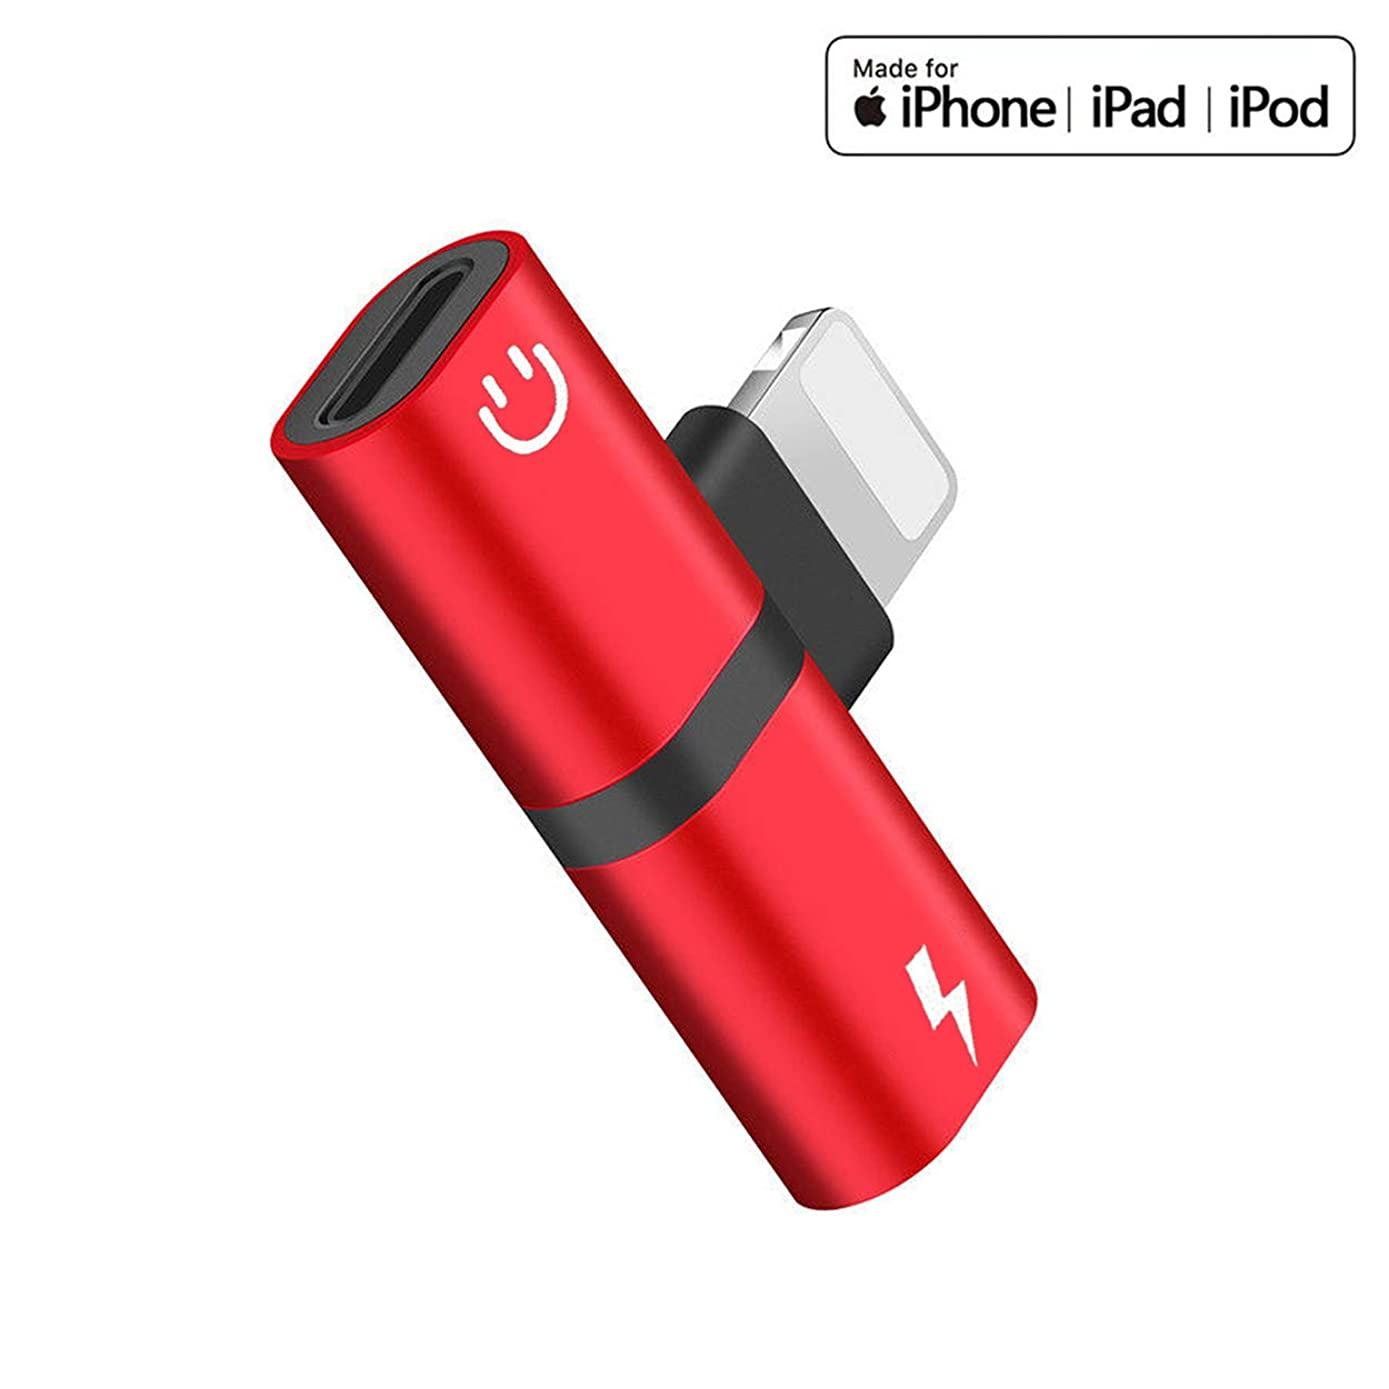 Headphone Adapter for iPhone X/XS/XS MAX/XR/8/8 Plus/7/7 Plus Headset Adaptor Splitter Earphone Connector Convertor 2 in 1 Accessories Car Charger,Cable Connector,Quick Charge Fast Car Adapter,Red